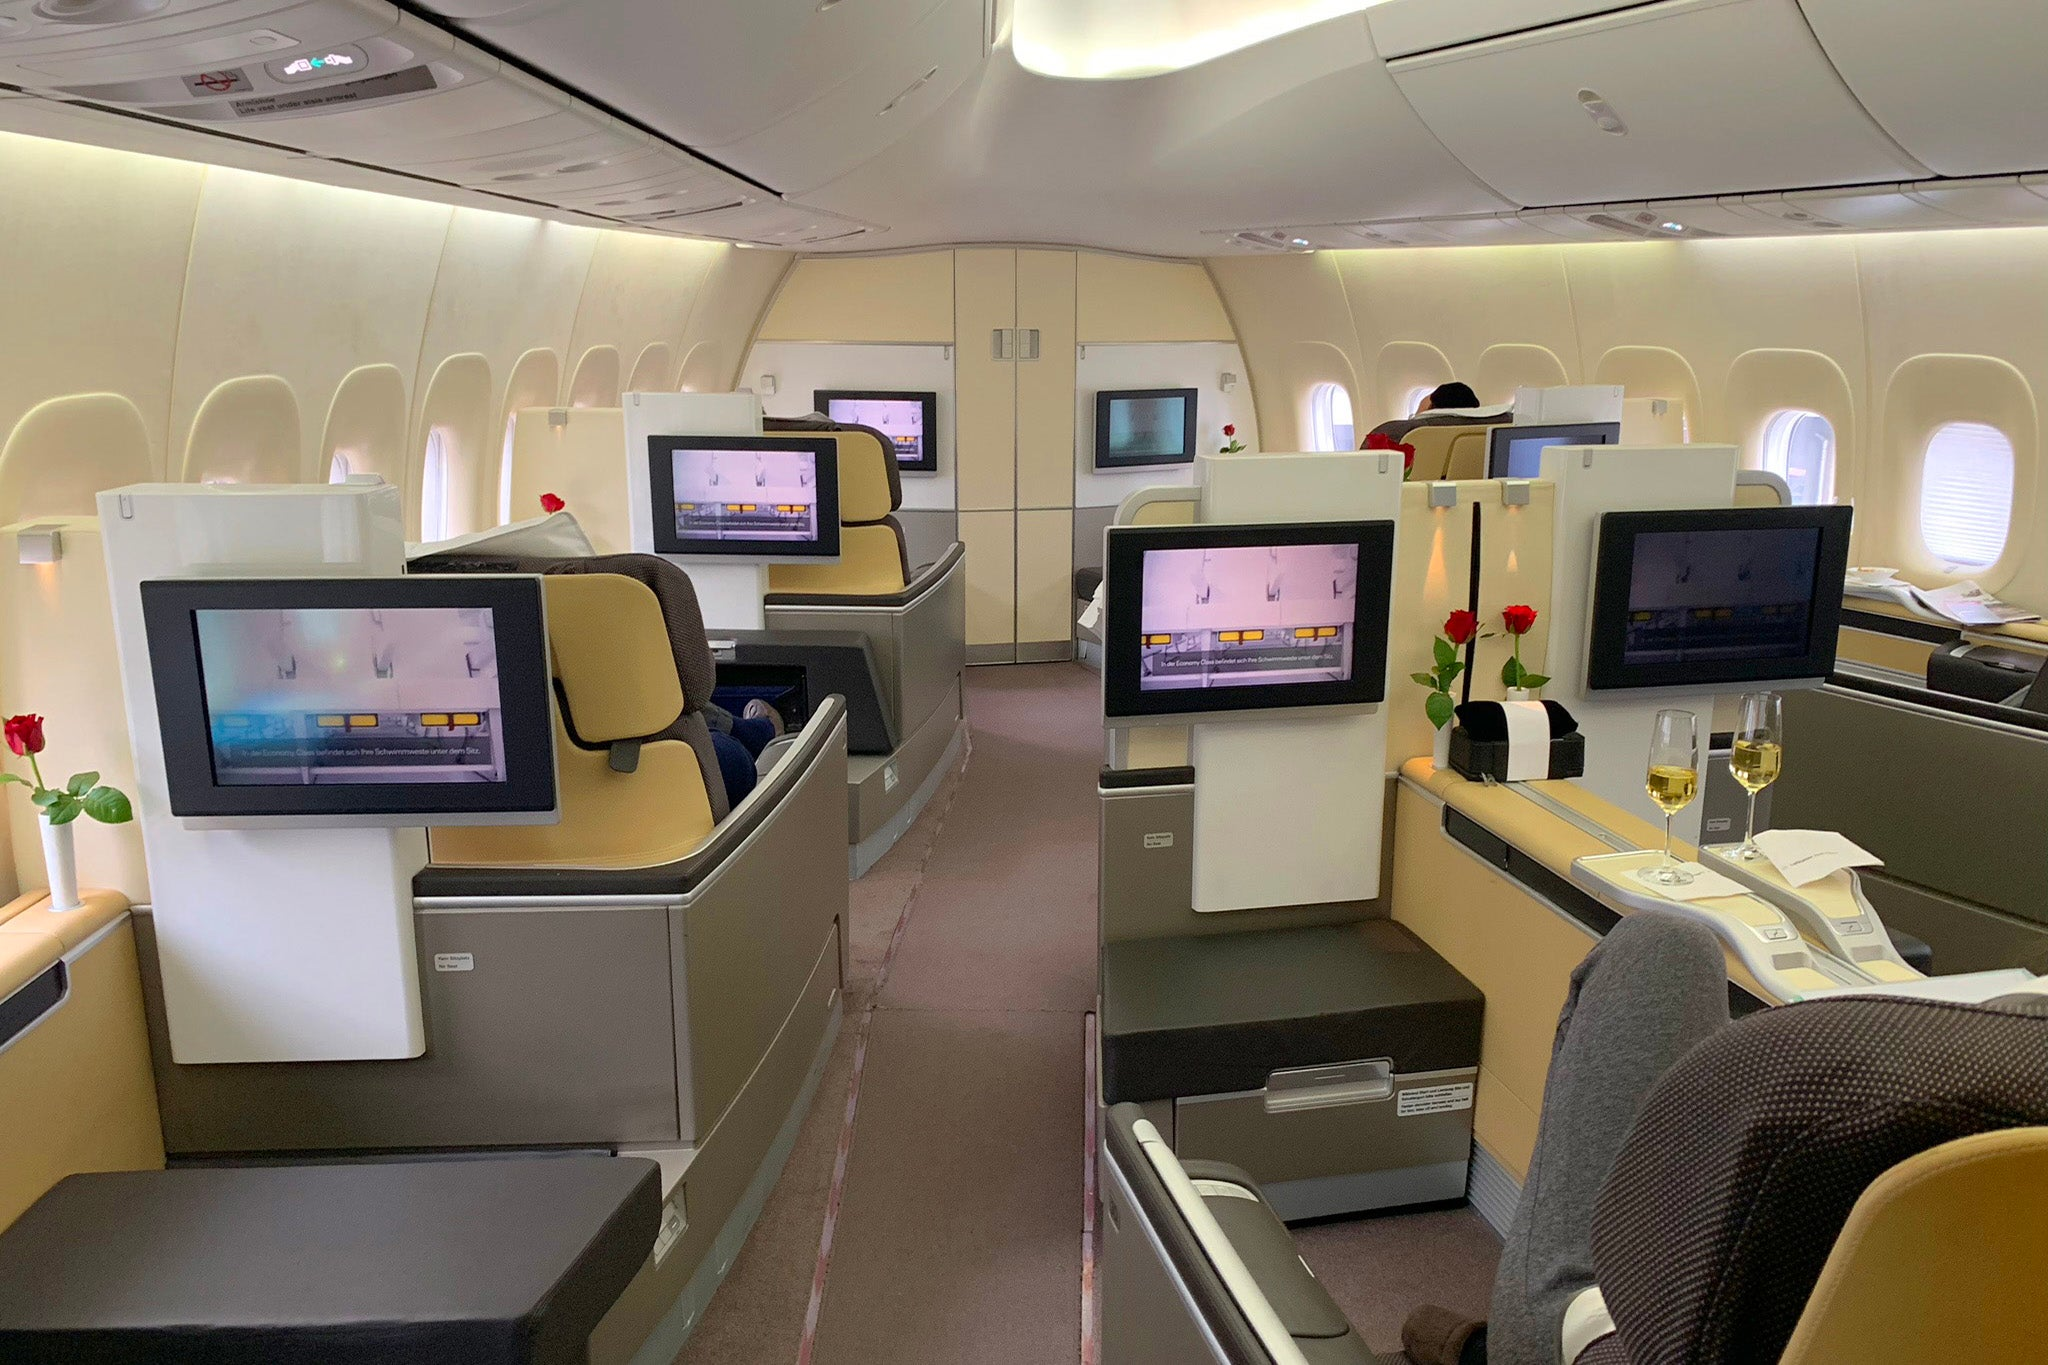 Finally some good news: Lufthansa resumes selling first class tickets